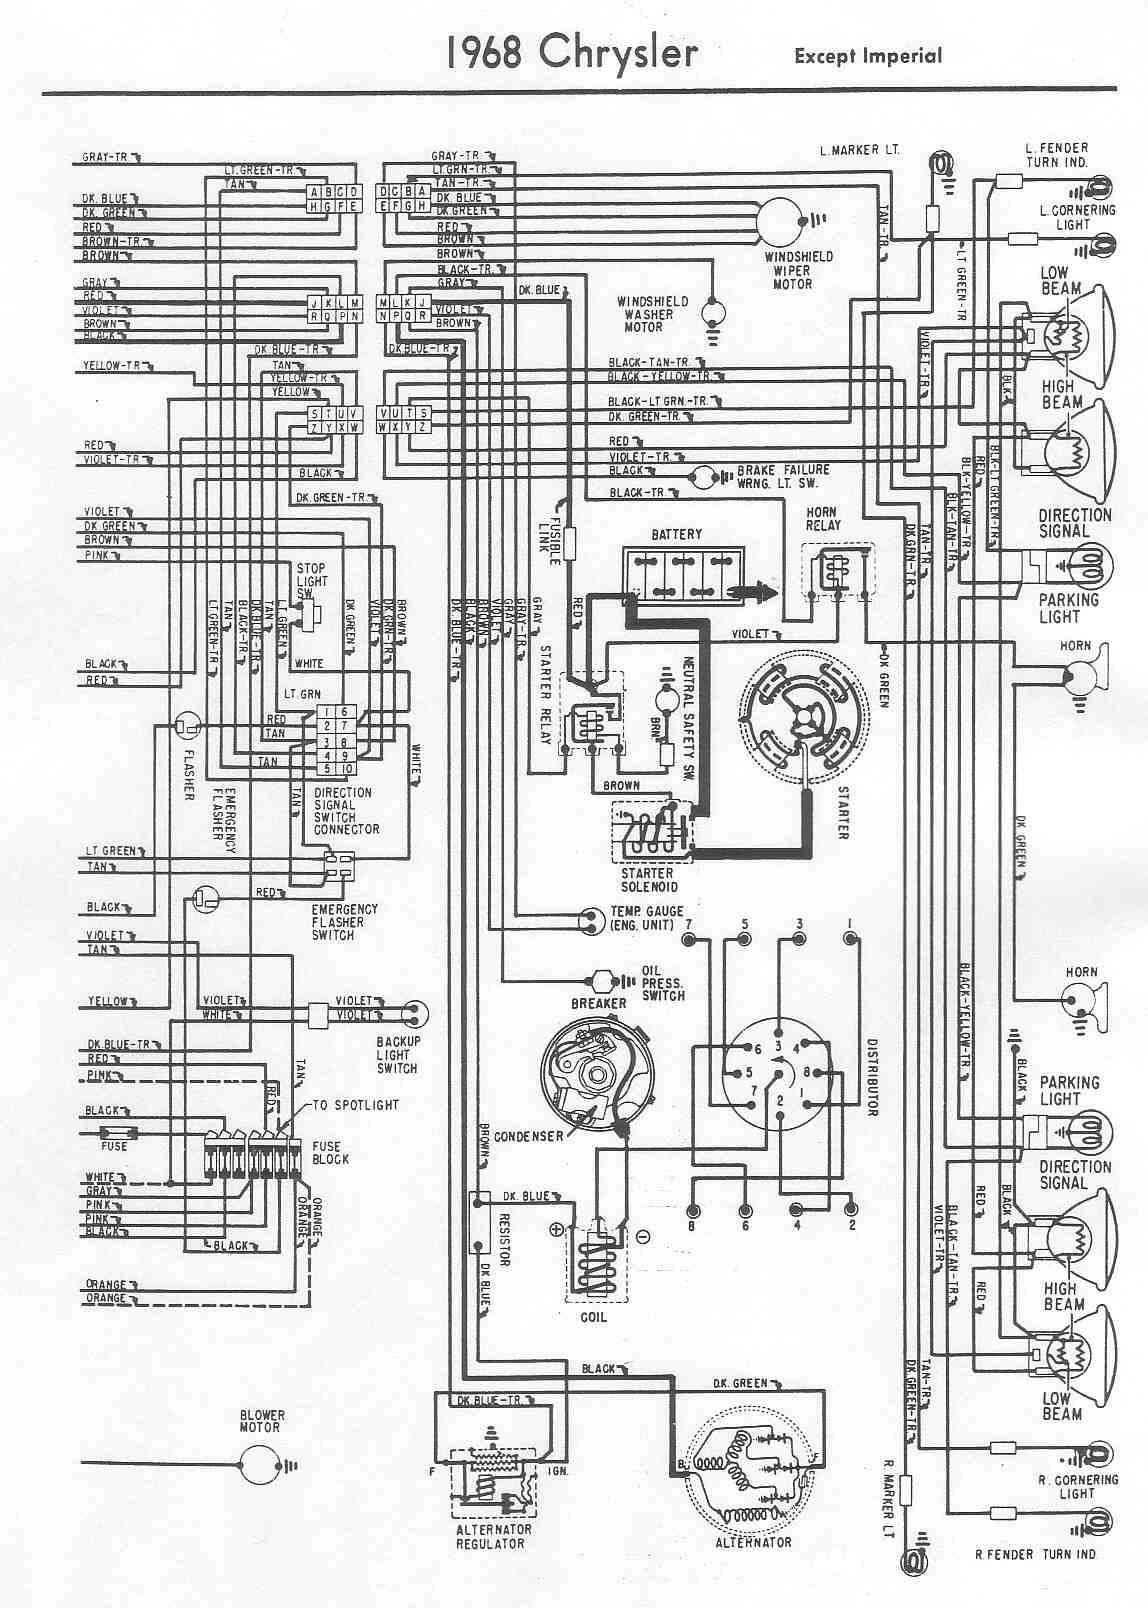 wiring a voltage regulator on 1965 dodge wiring diagramwiring a voltage  regulator on 1965 dodge best